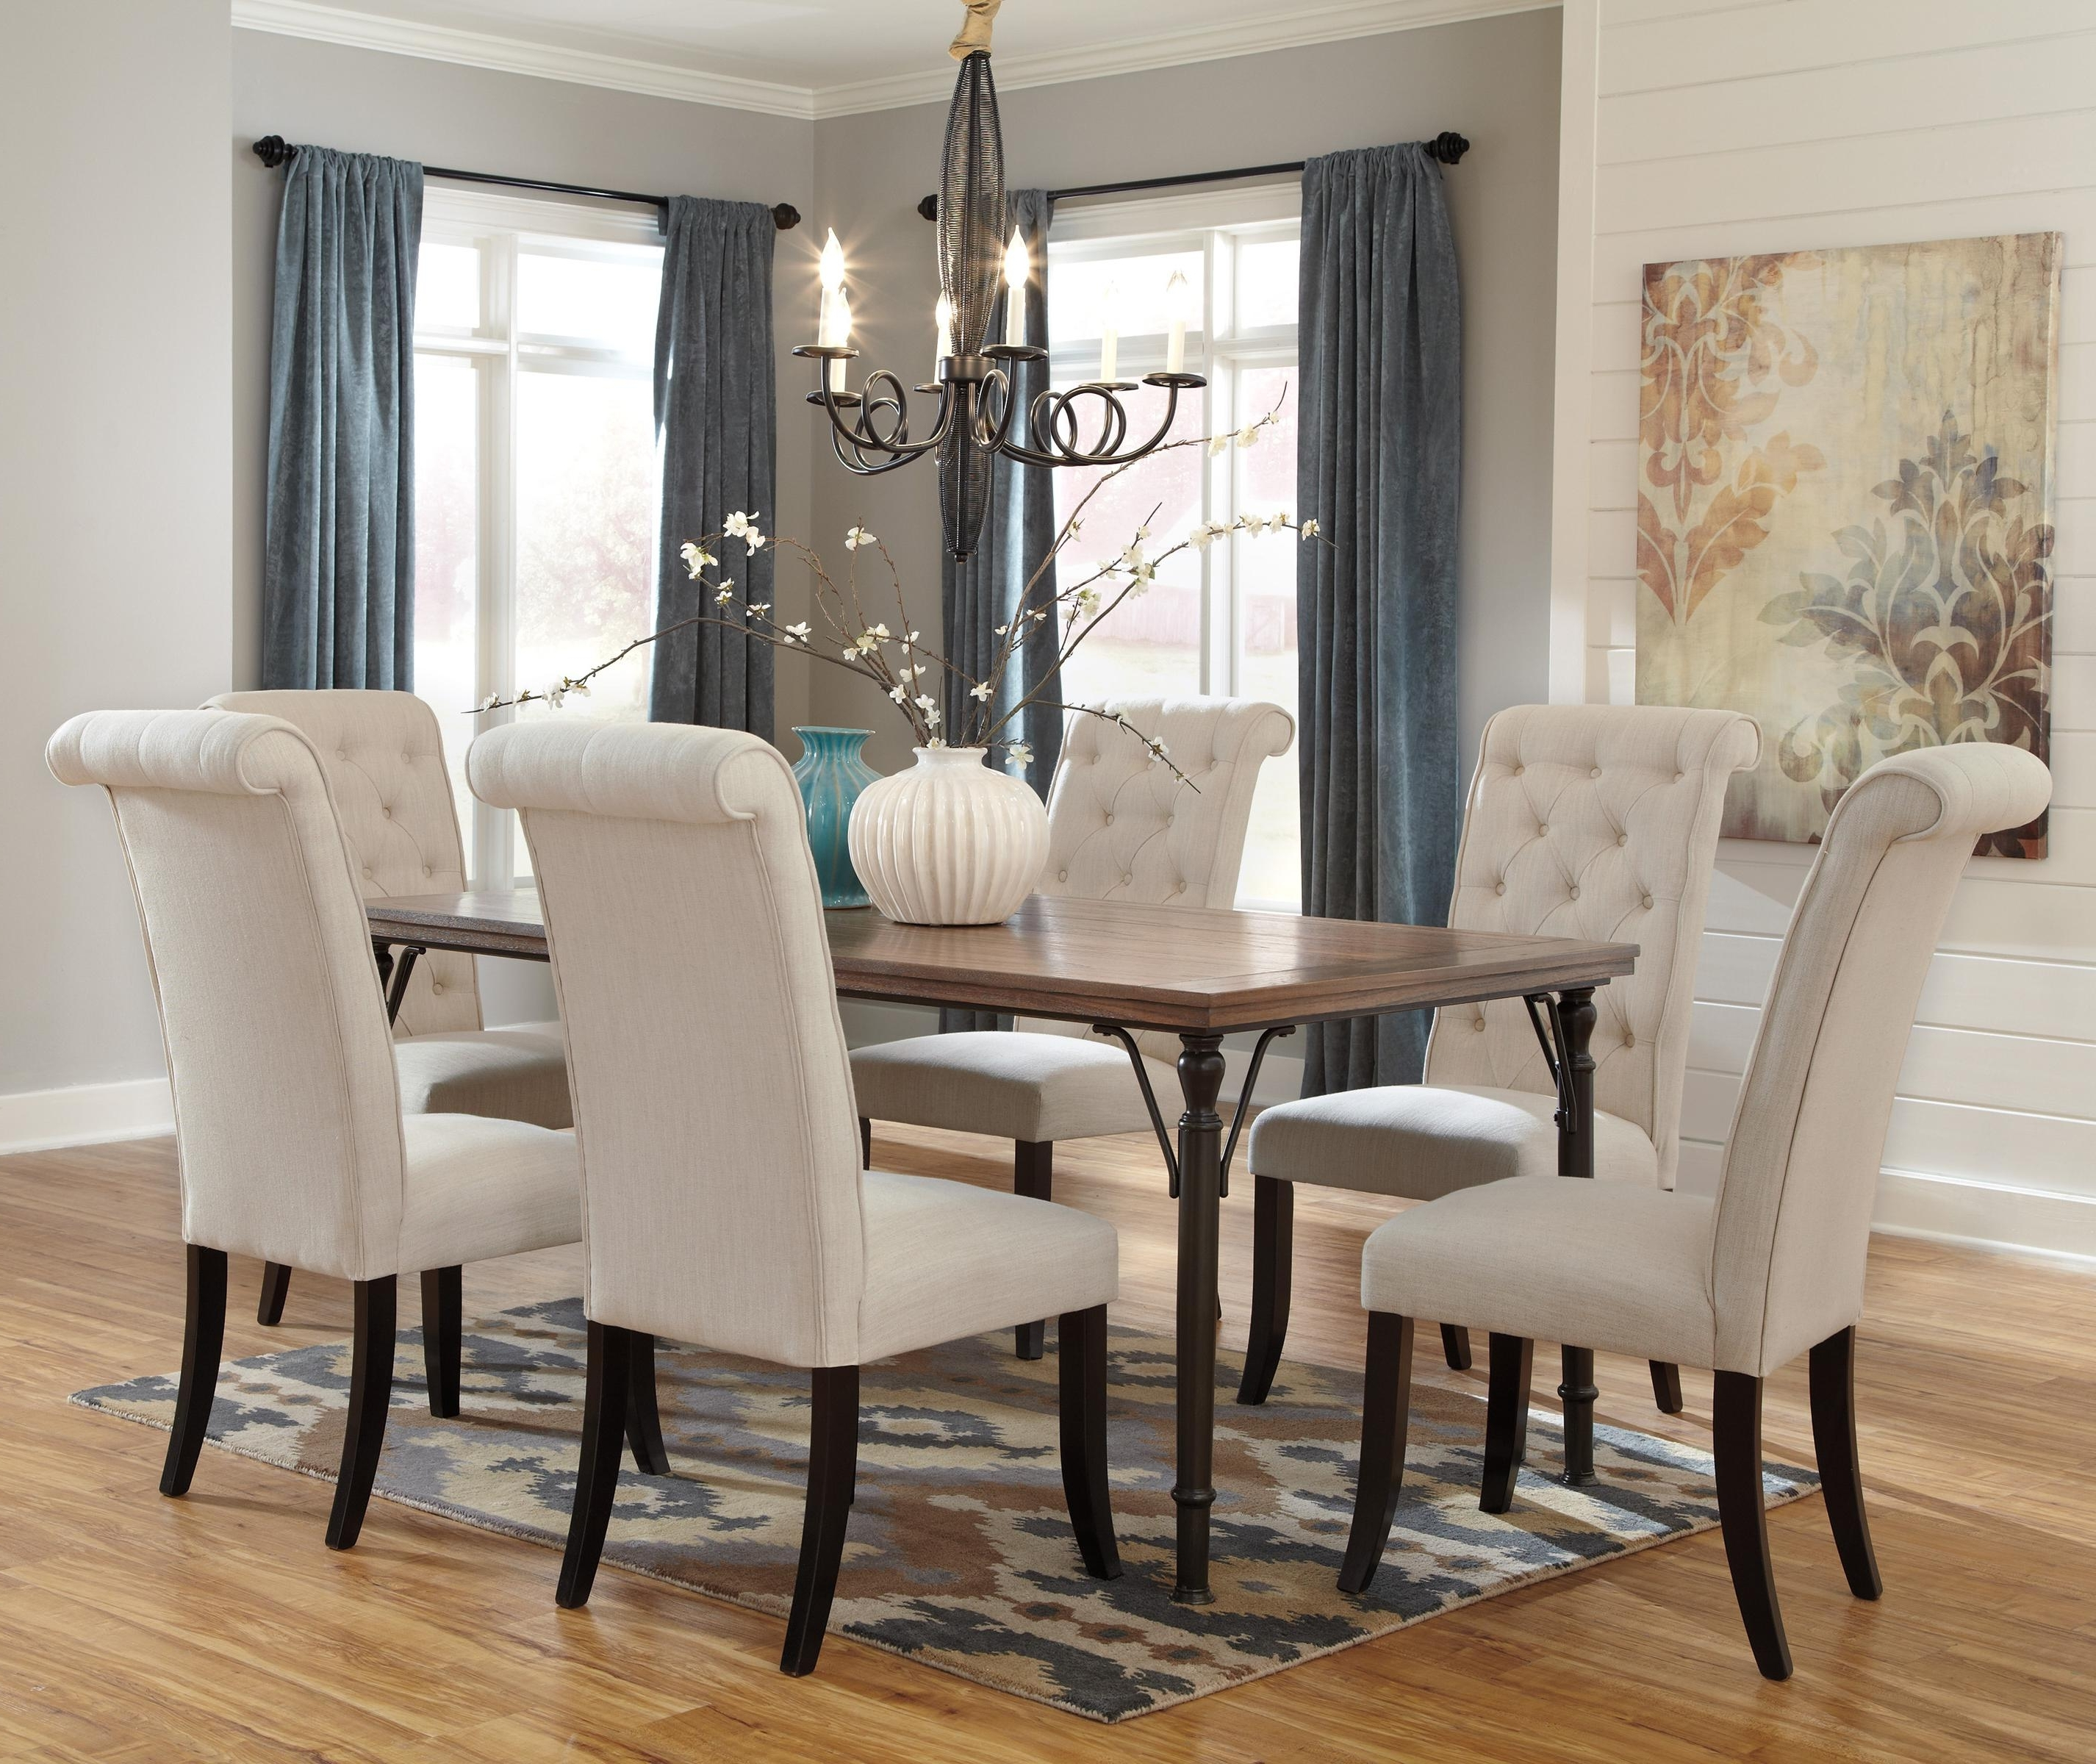 7 Piece Rectangular Dining Room Table Set W/ Wood Top & Metal Legs Intended For Current Parquet 7 Piece Dining Sets (Gallery 15 of 25)